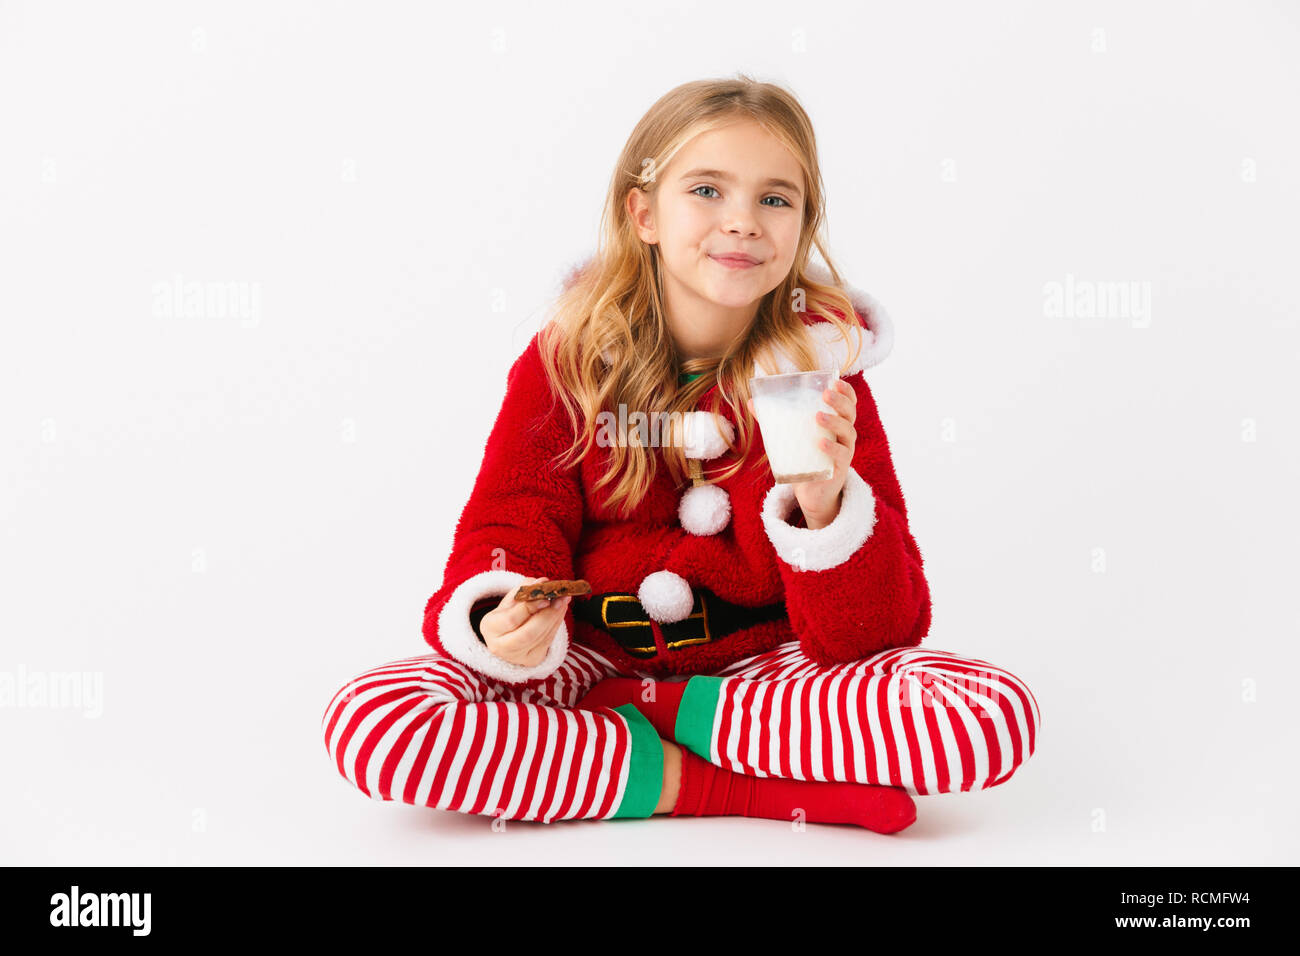 ee2a8c7449ec Cheerful little girl wearing Christmas costume sitting isolated over white  background, eating cookie with milk